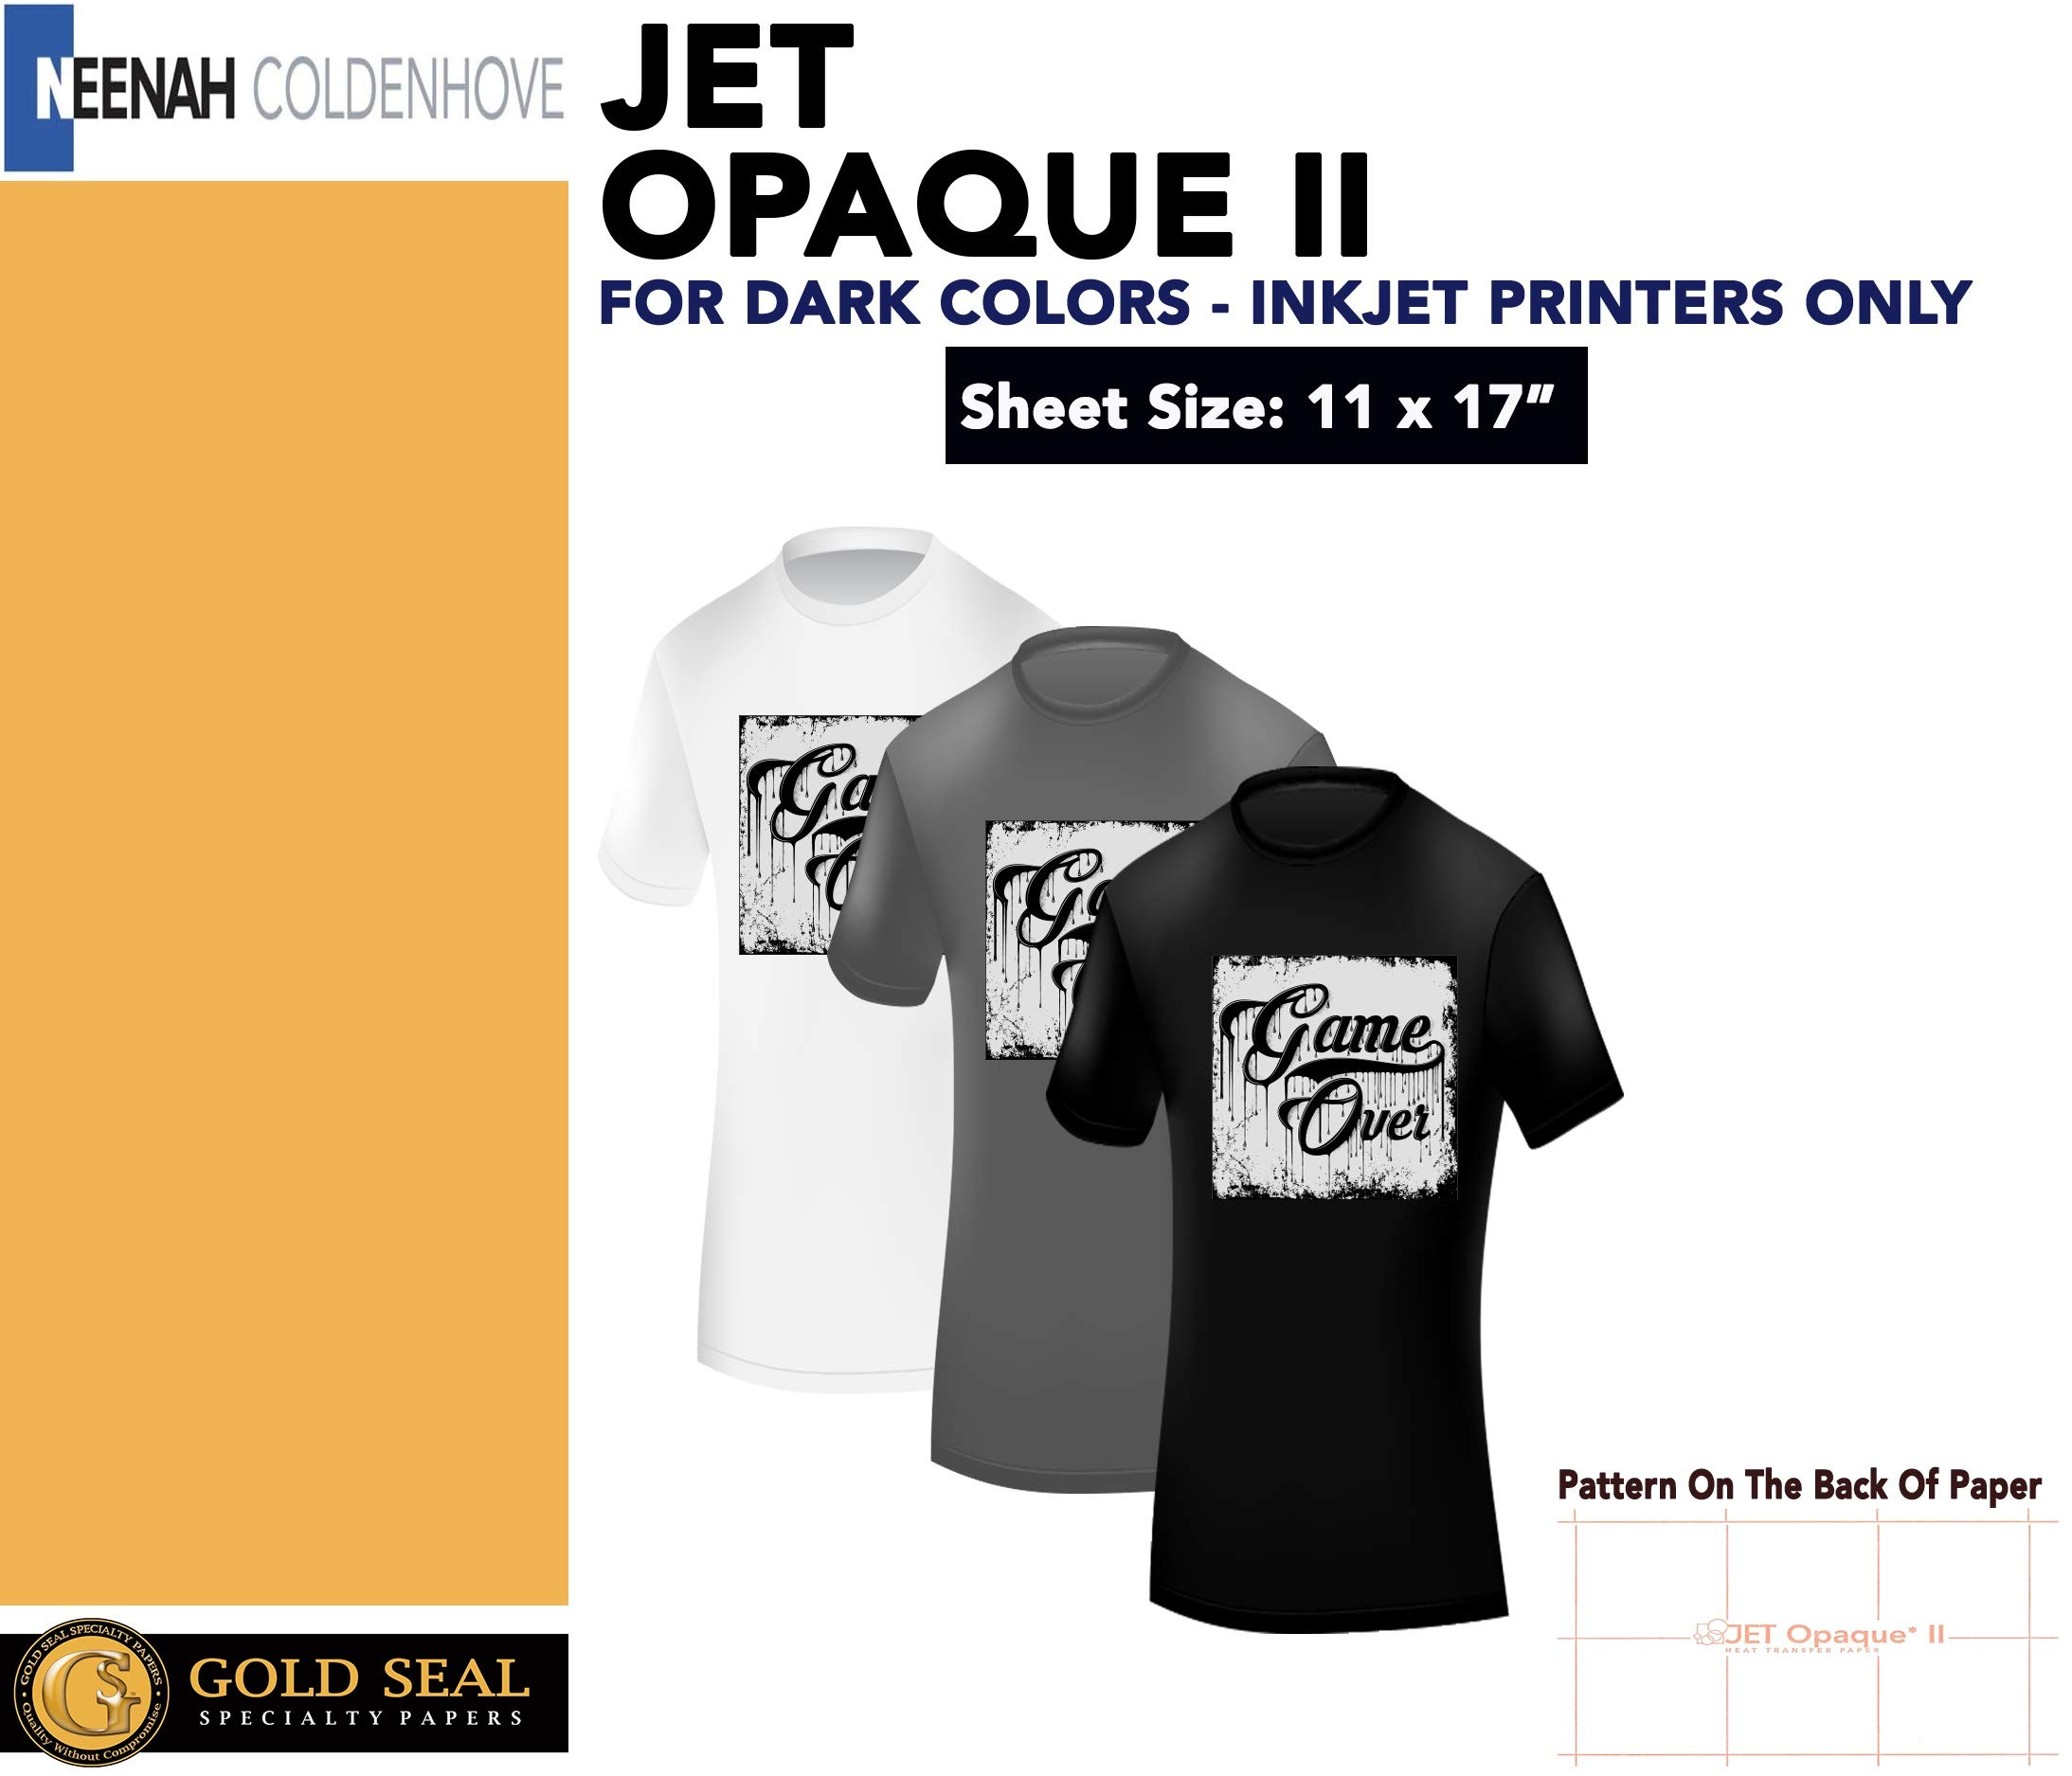 IRON ON HEAT TRANSFER PAPER JET OPAQUE II 11 x 17'' CUSTOM PACK 50 SHEETS by Neenah